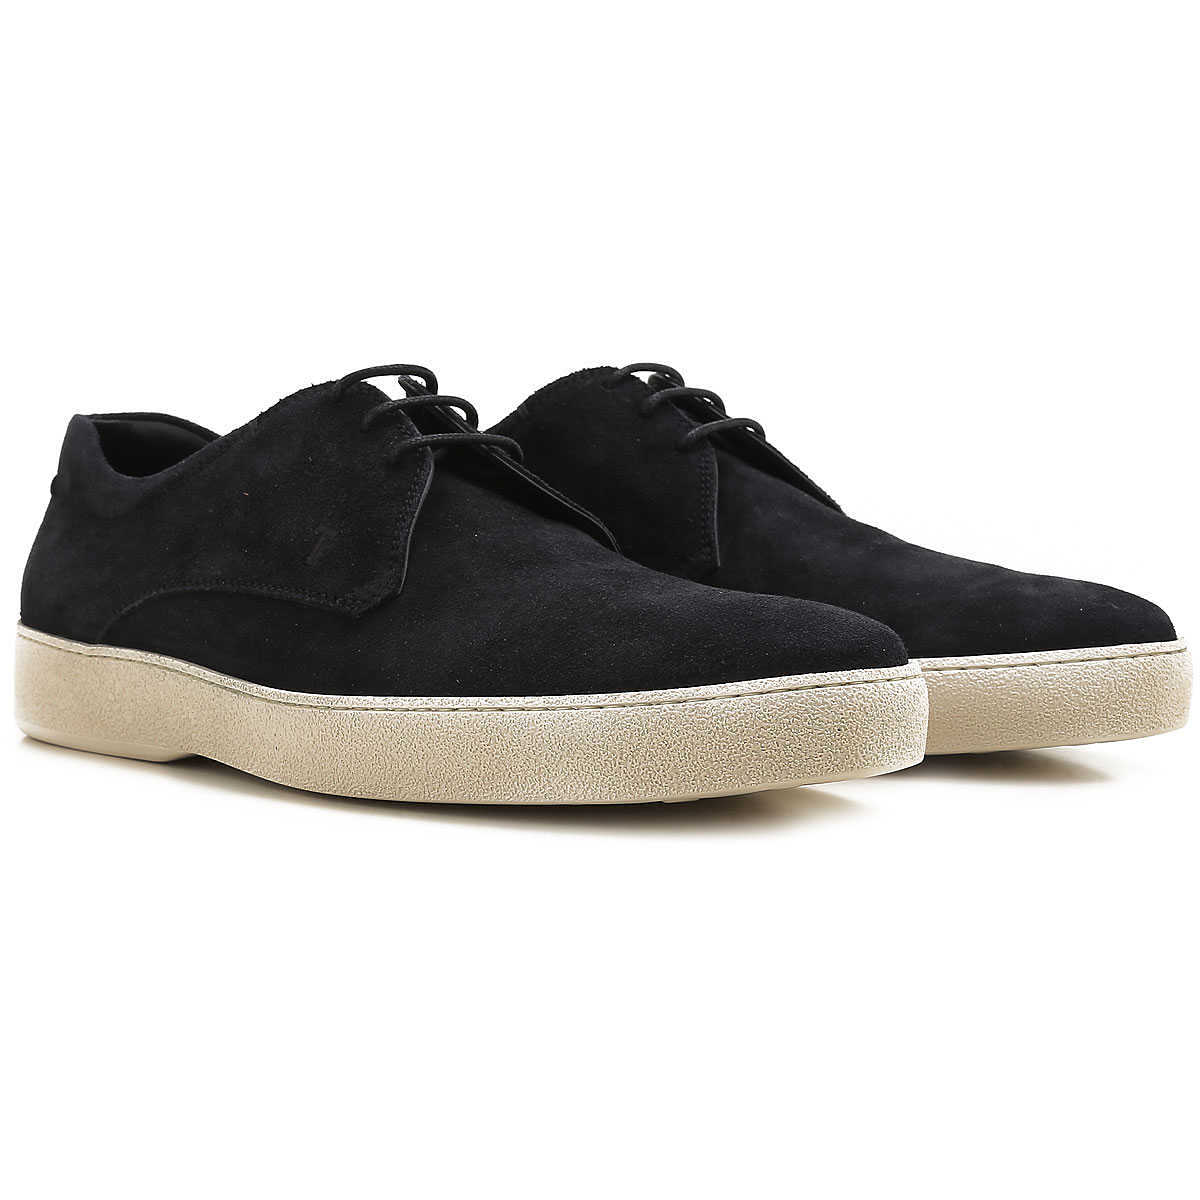 Tods Lace Up Shoes for Men Oxfords 10 11 5 6.5 Derbies and Brogues On Sale UK - GOOFASH